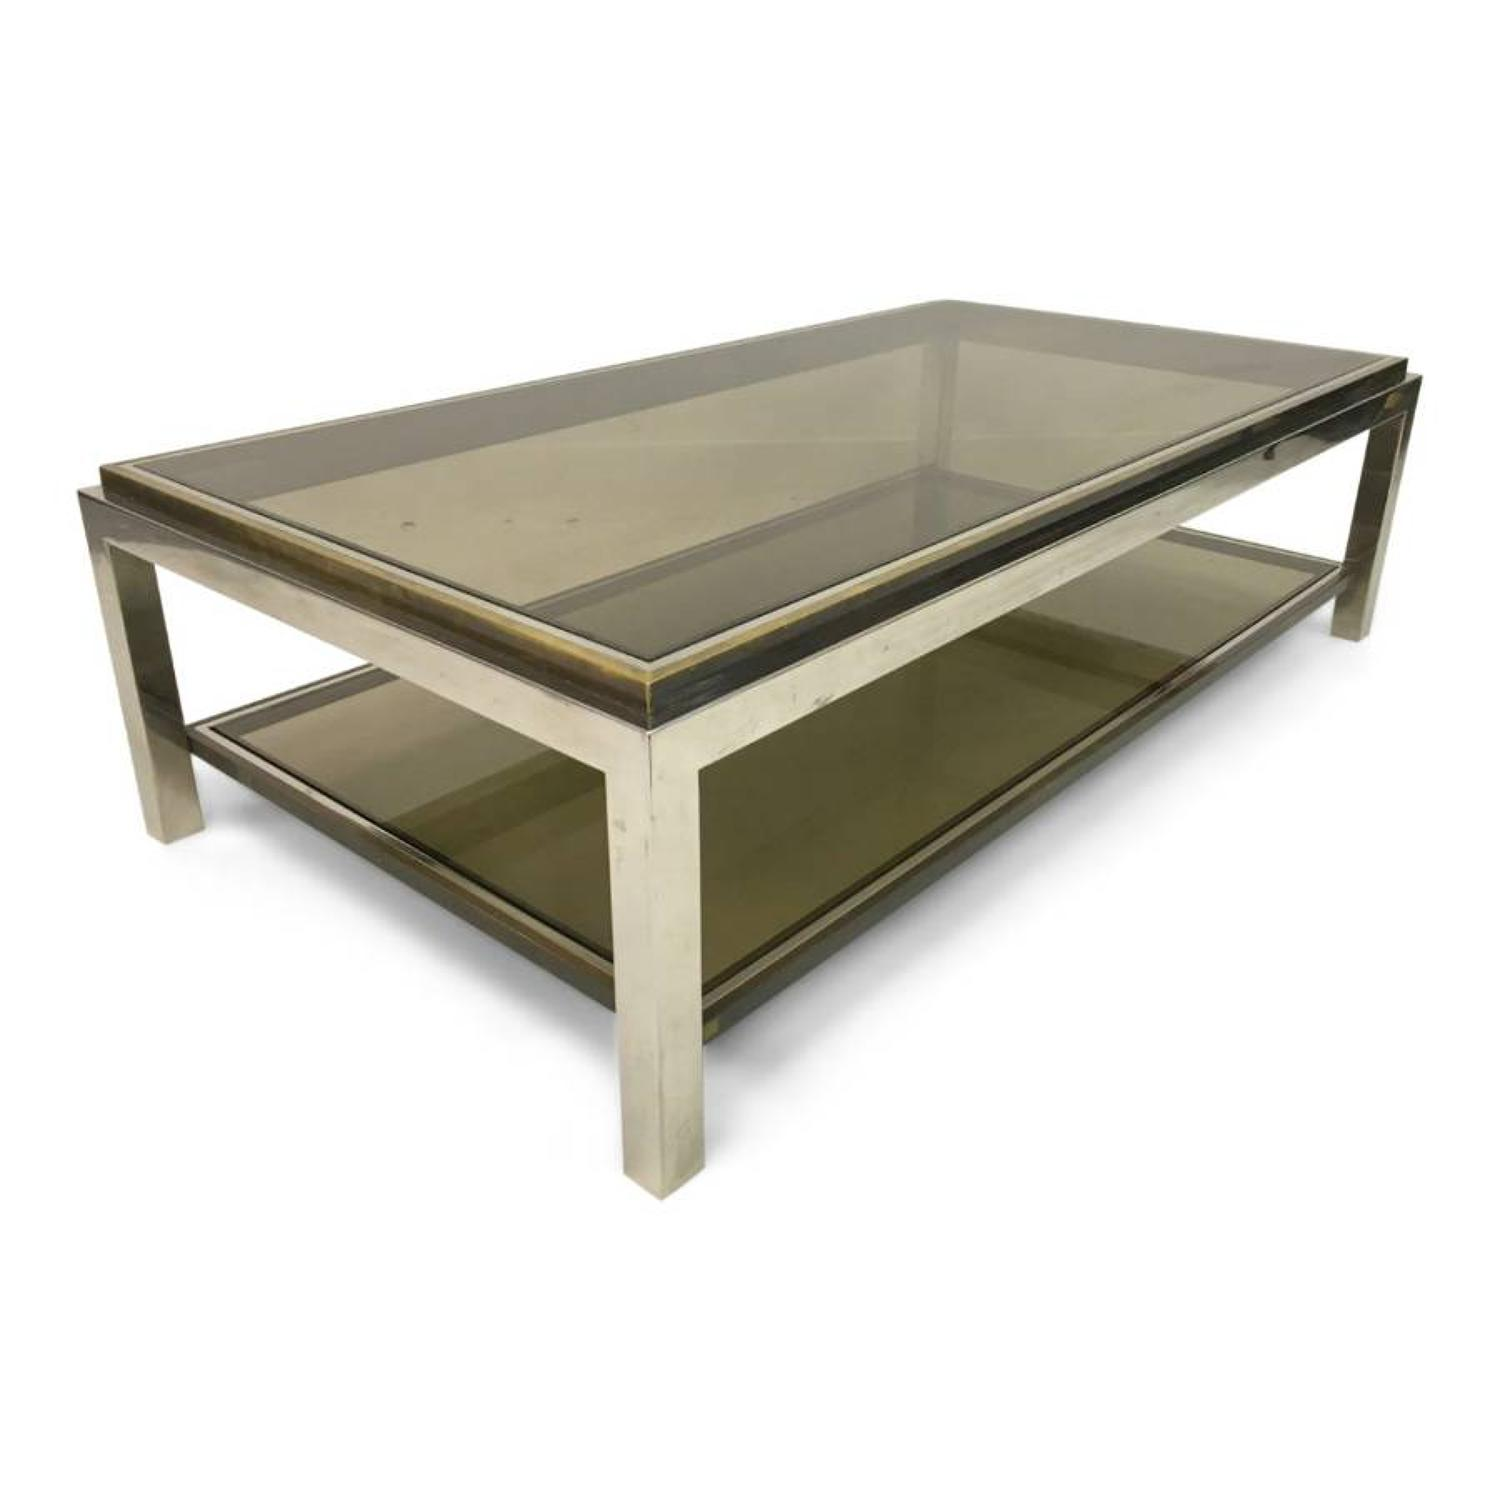 1970s chrome and brass coffee table by Jean Charles